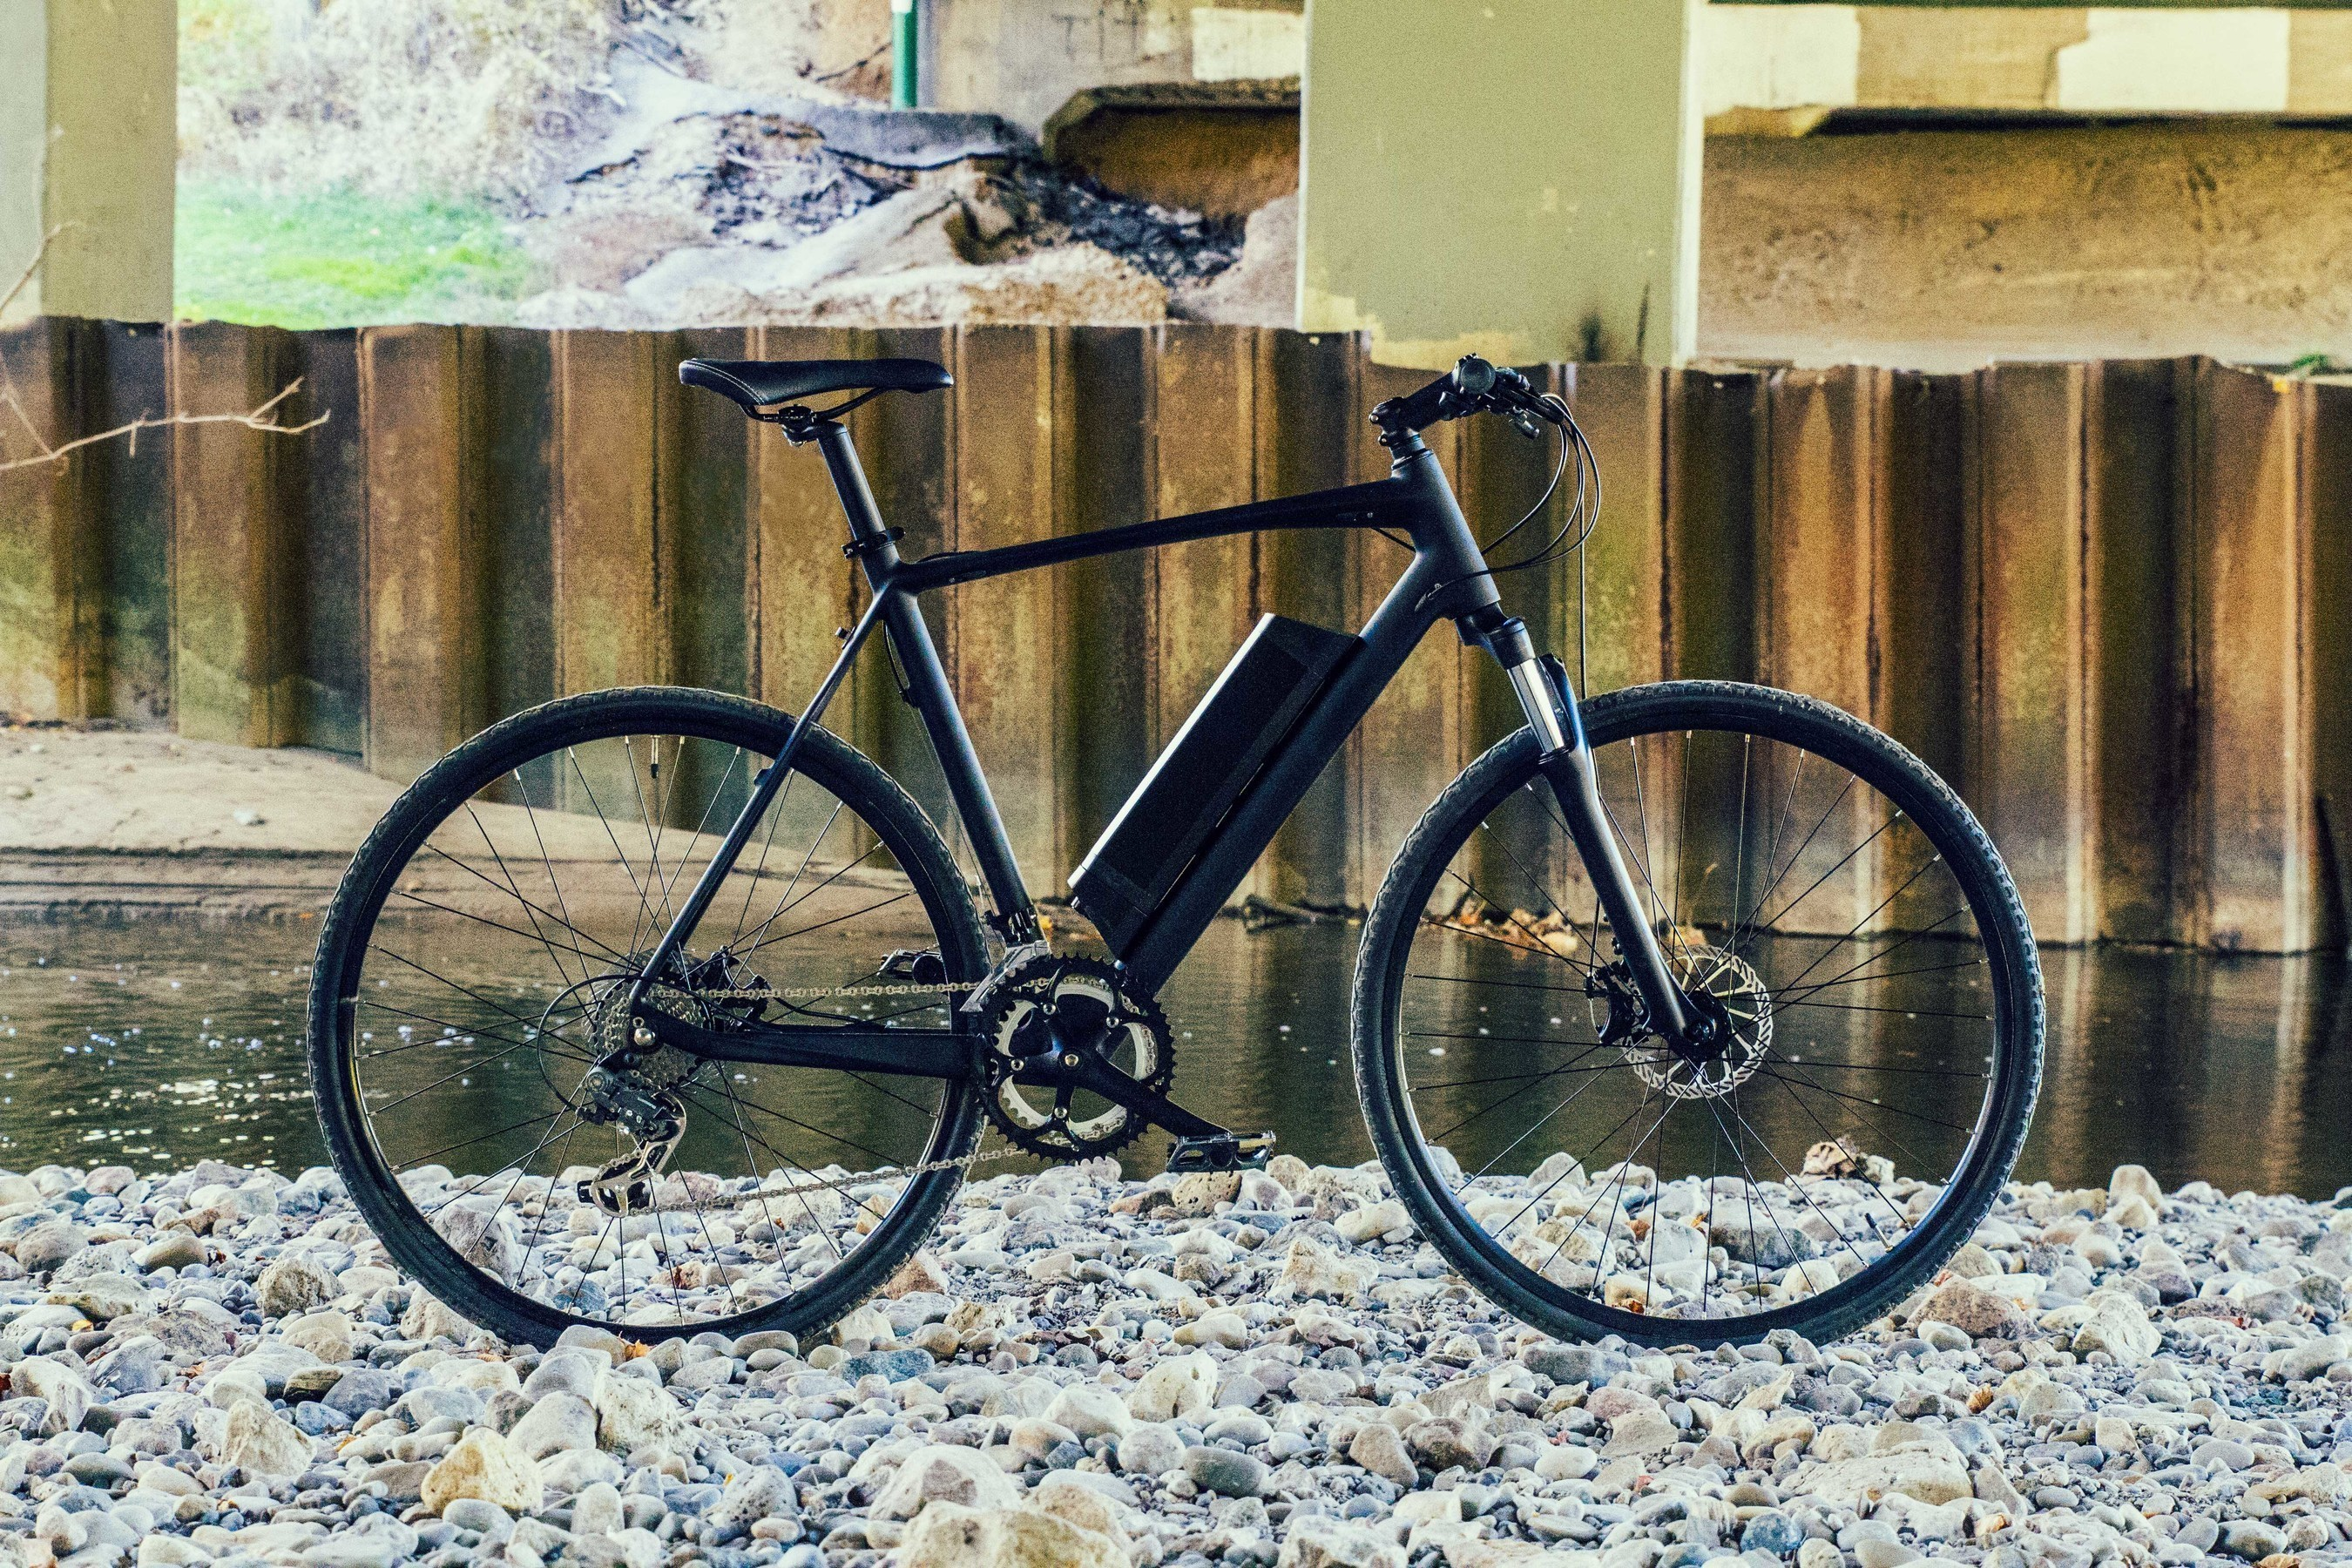 EC1 - The Affordable 2-in-1 Carbon Fiber Electric Bicycle